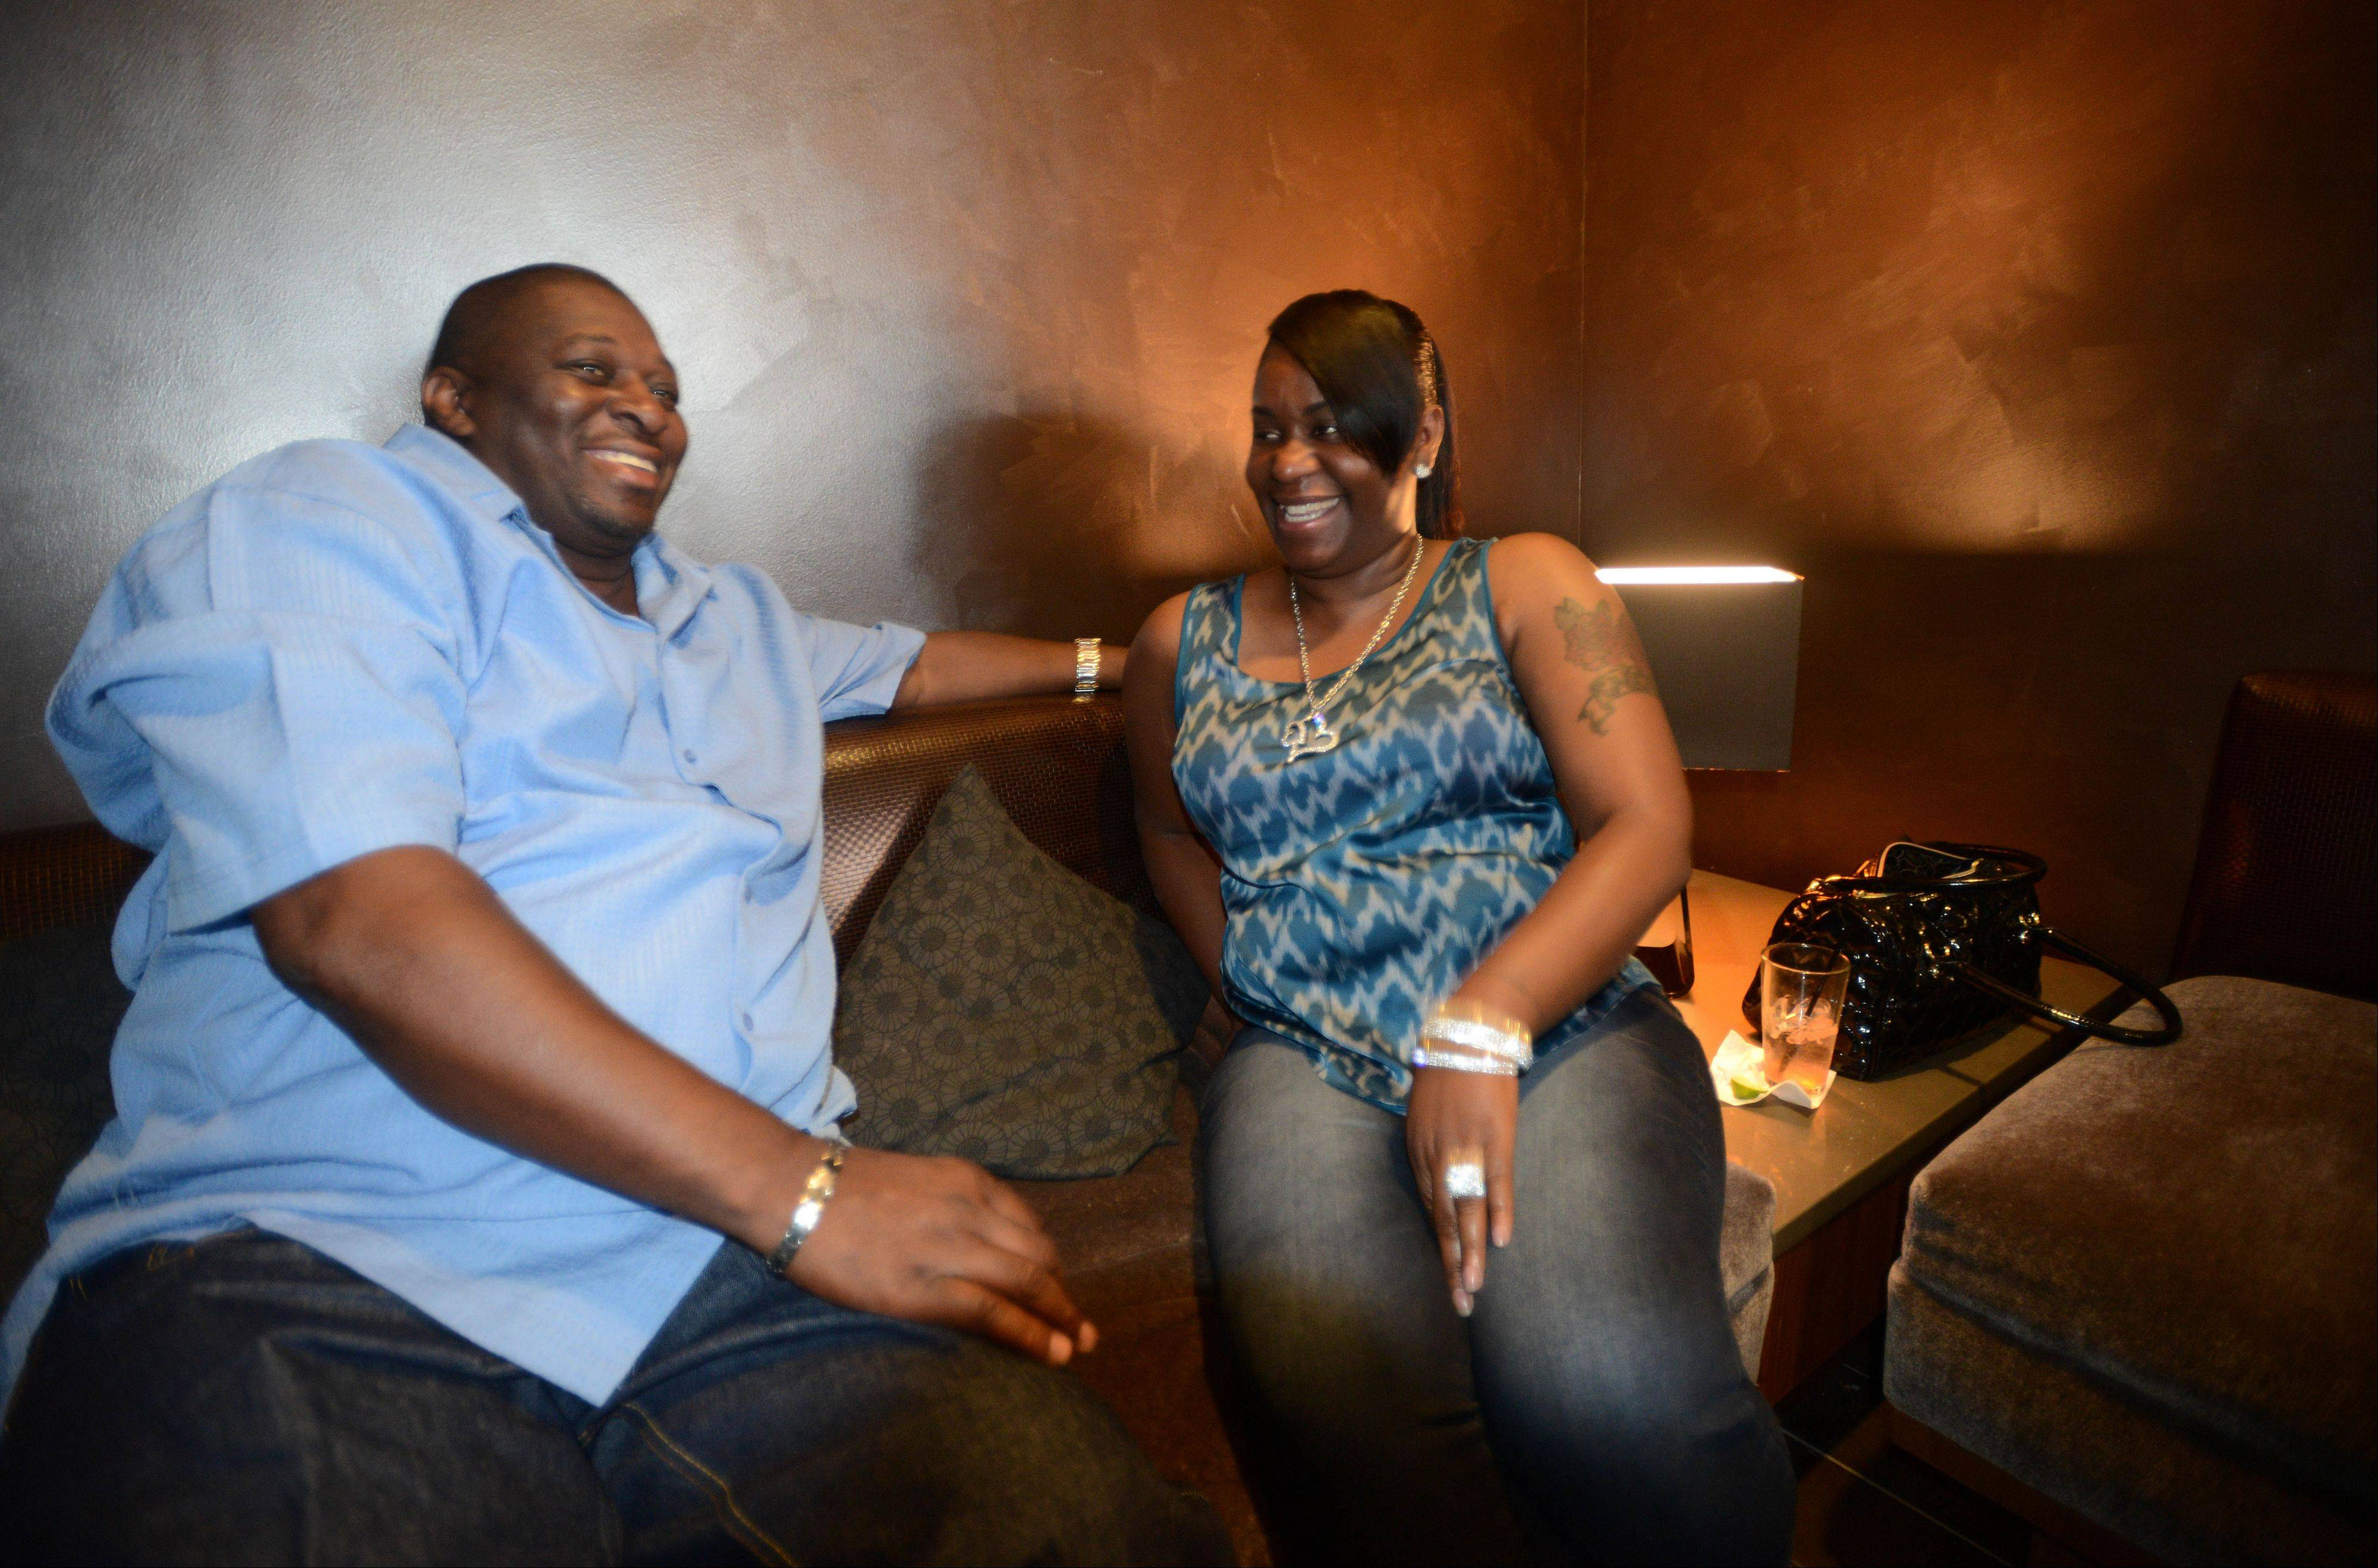 Westley Spruill and Teneka Ware share a laugh at Studio Movie Grill in Wheaton.